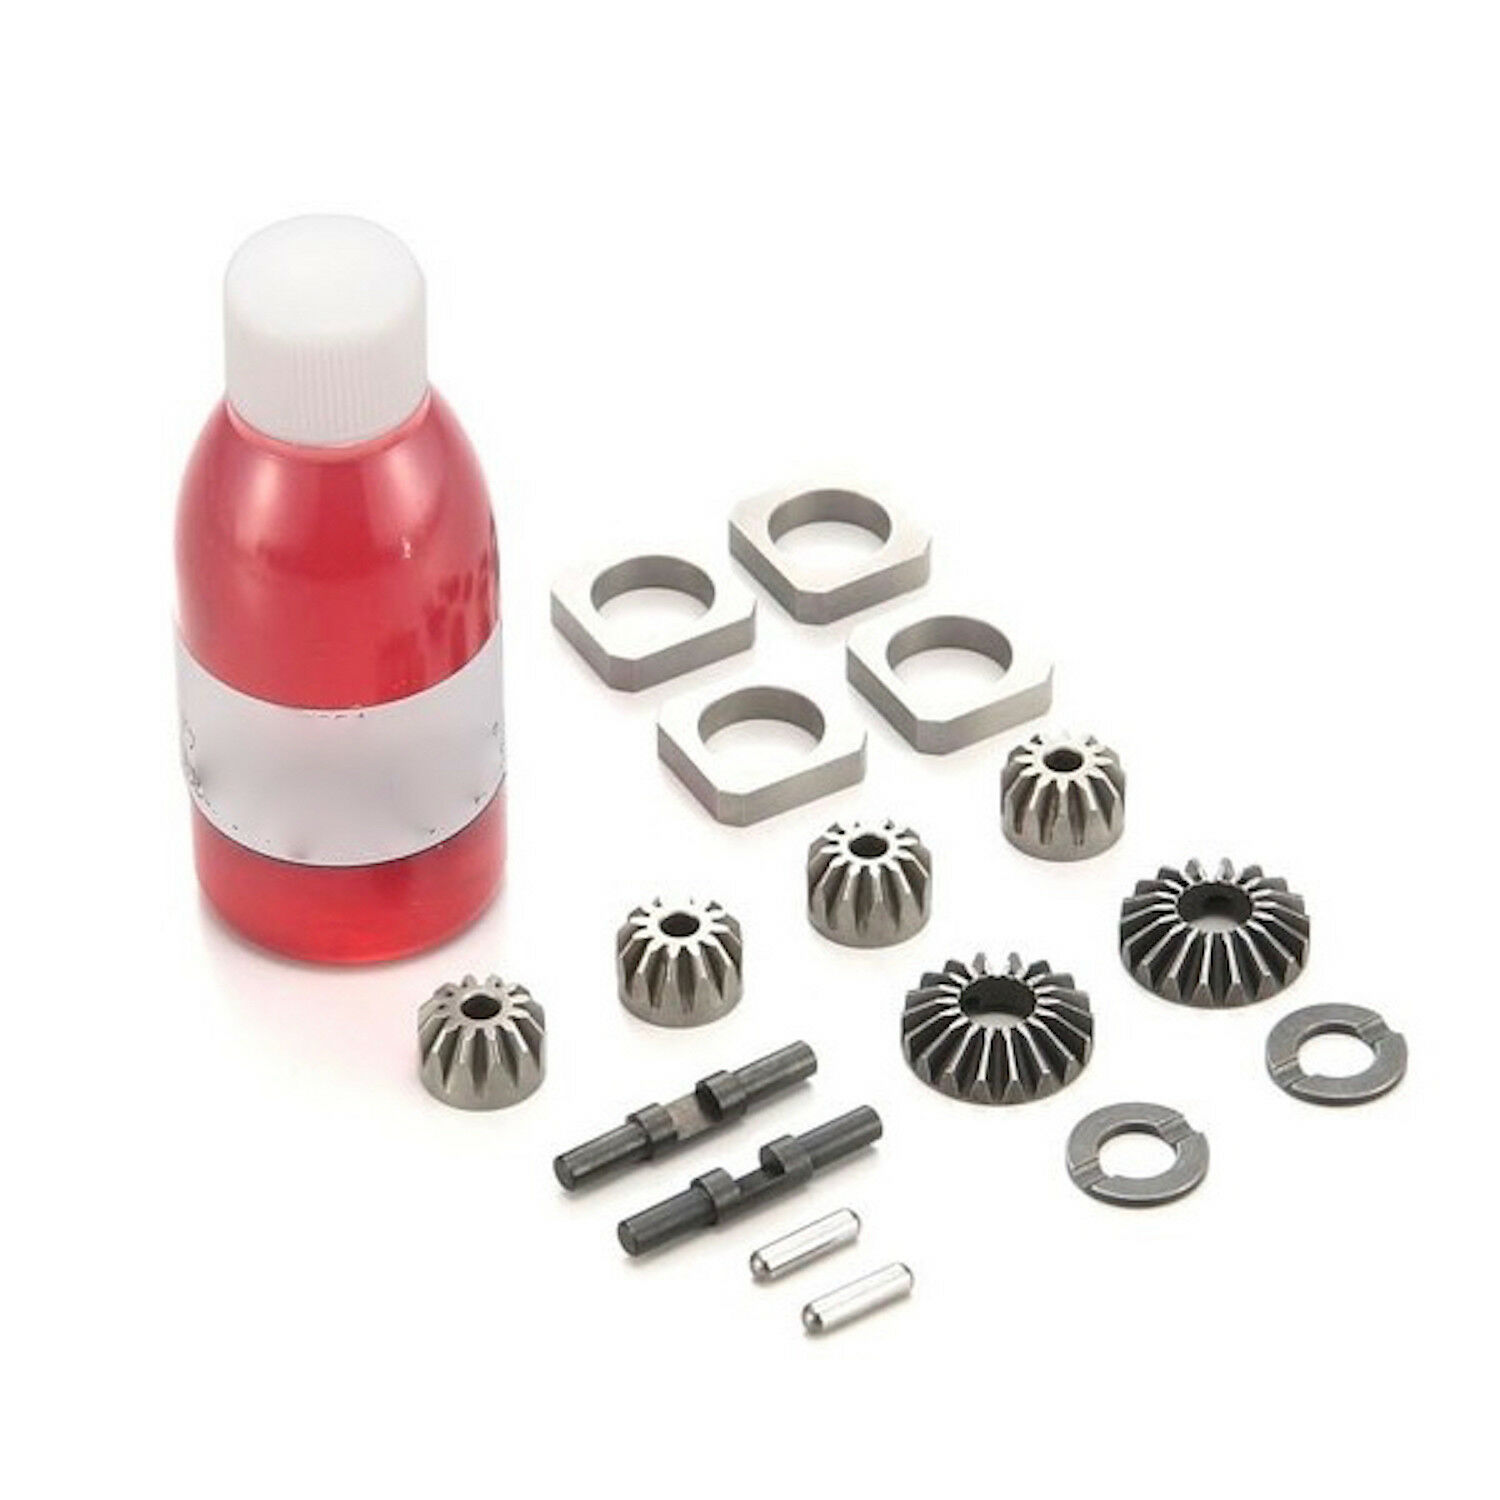 Zahnradset TCD-differential mp9 Kyosho ifw-403   706419